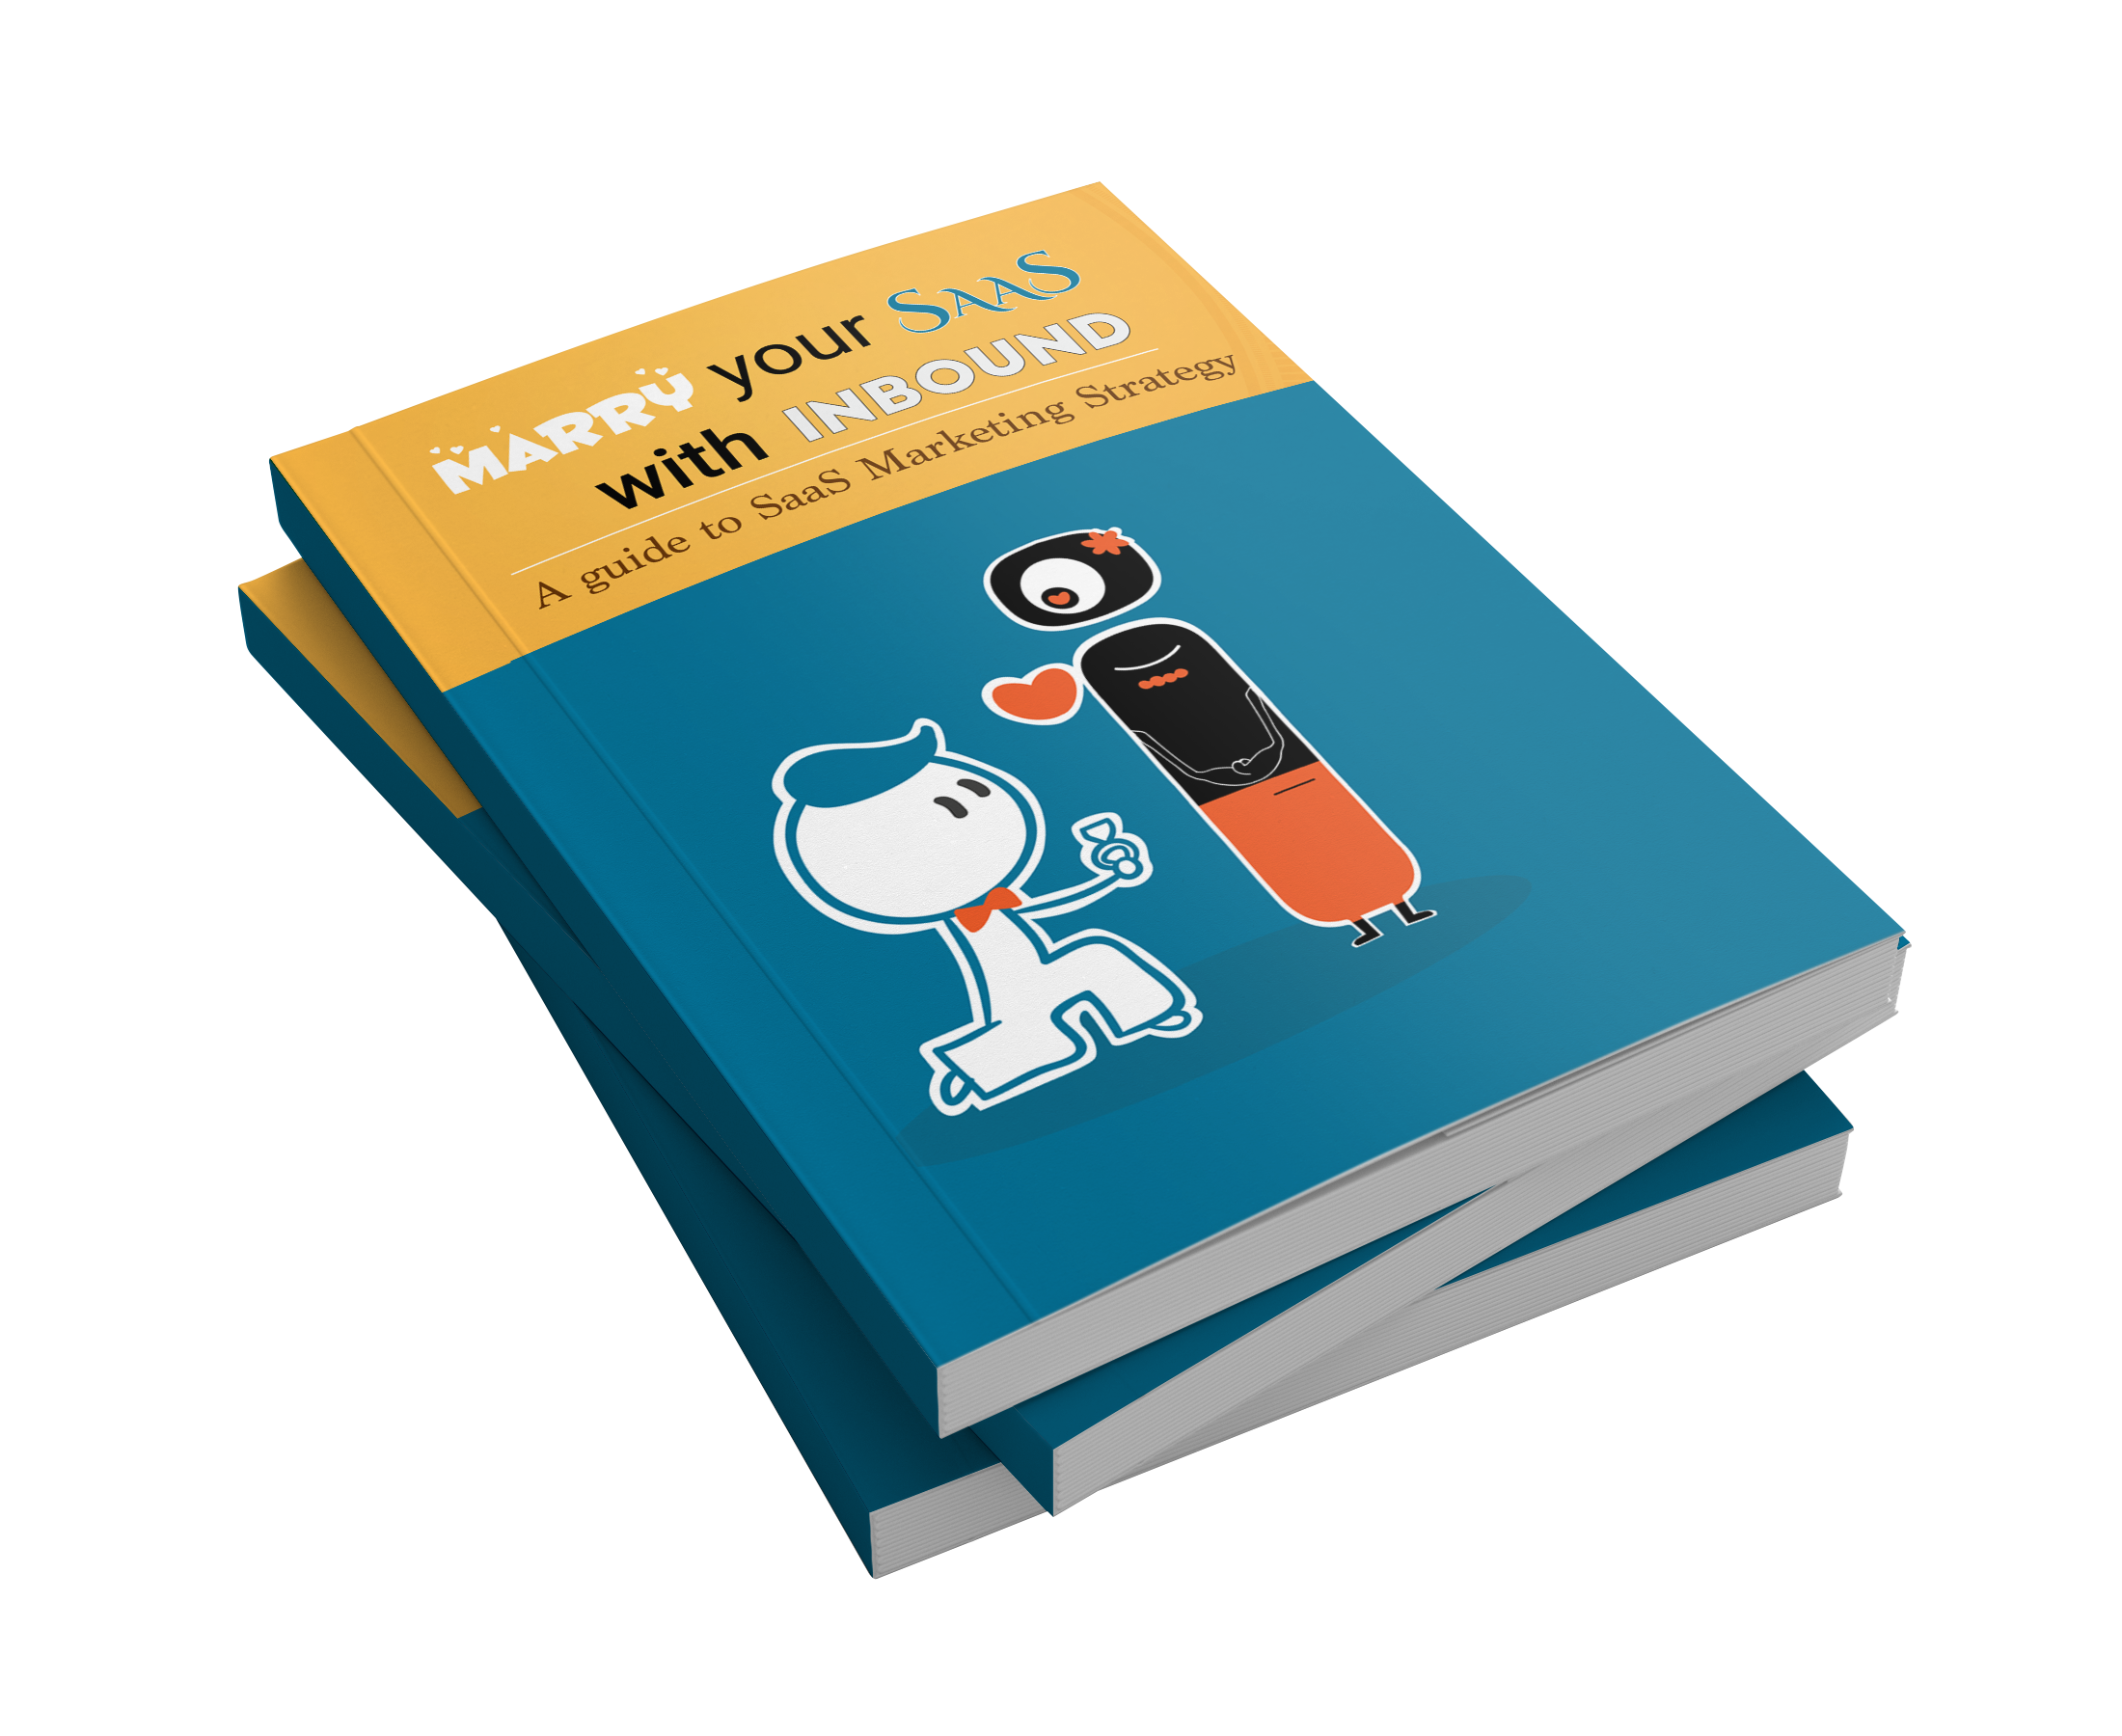 SaaS Marketing guide e-book